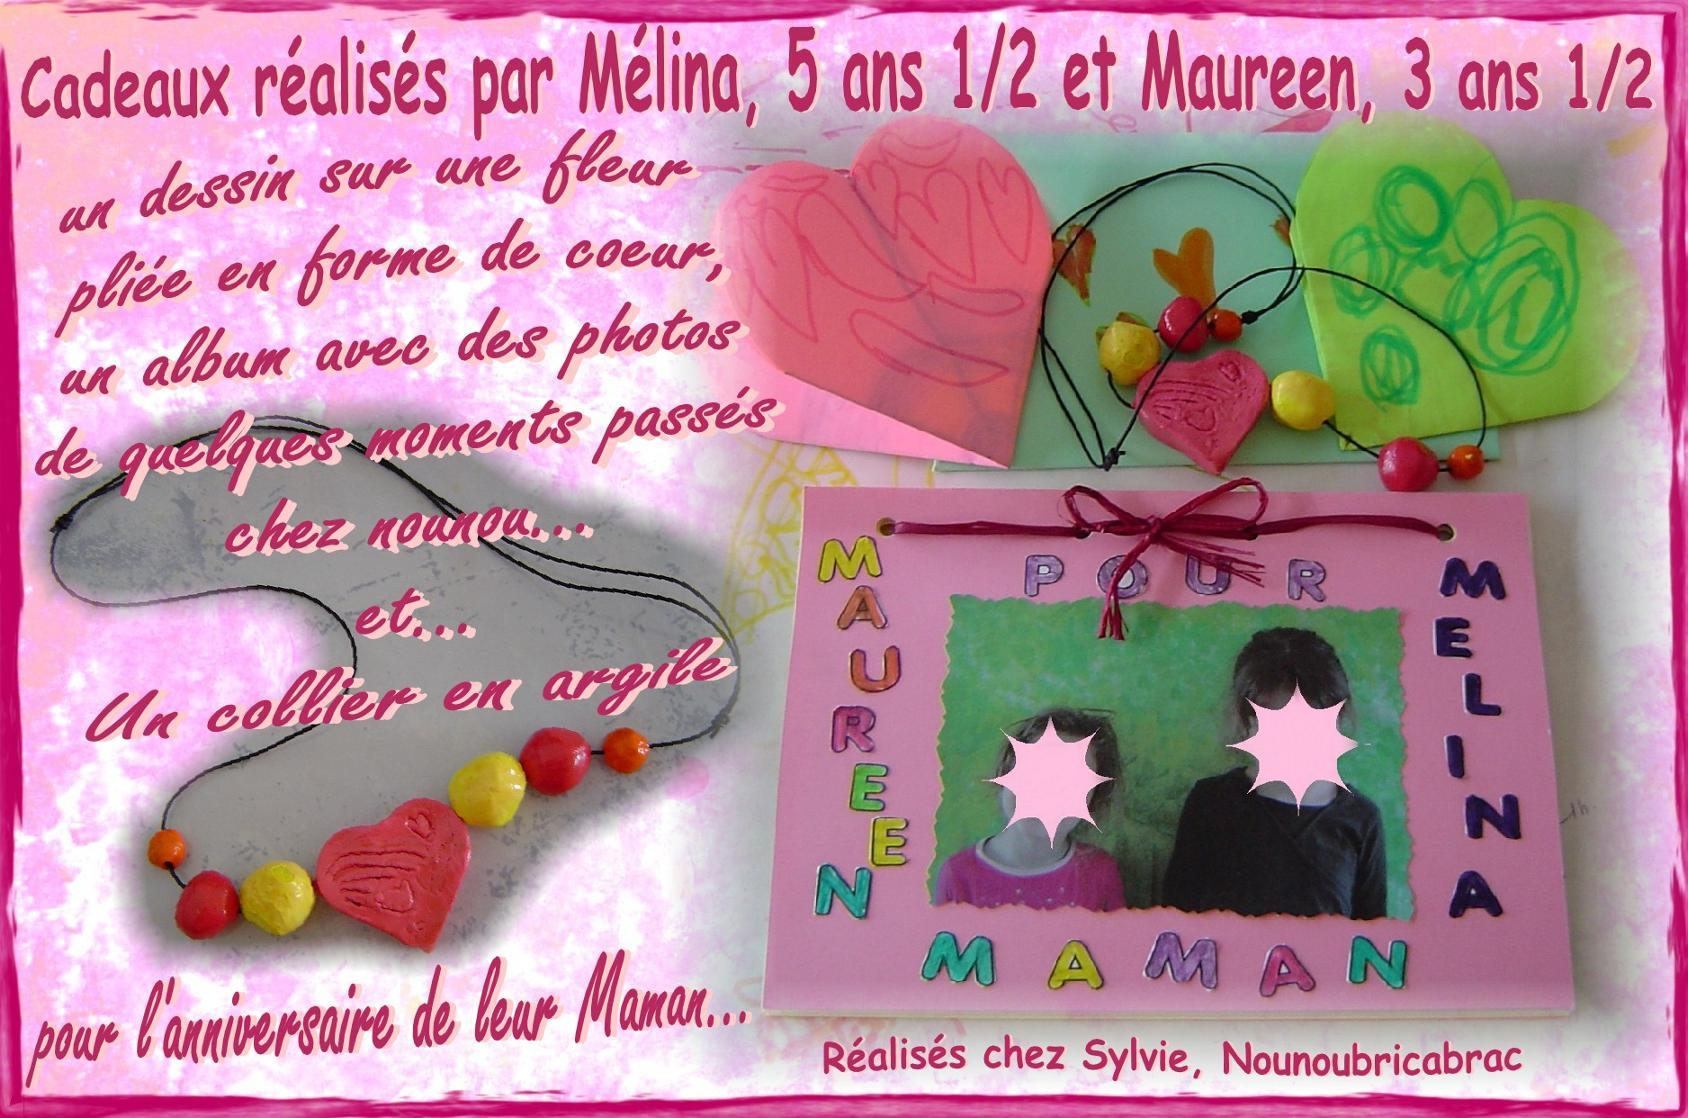 Cadeaux d'Anniversaire... raliss par Mlina et Maureen